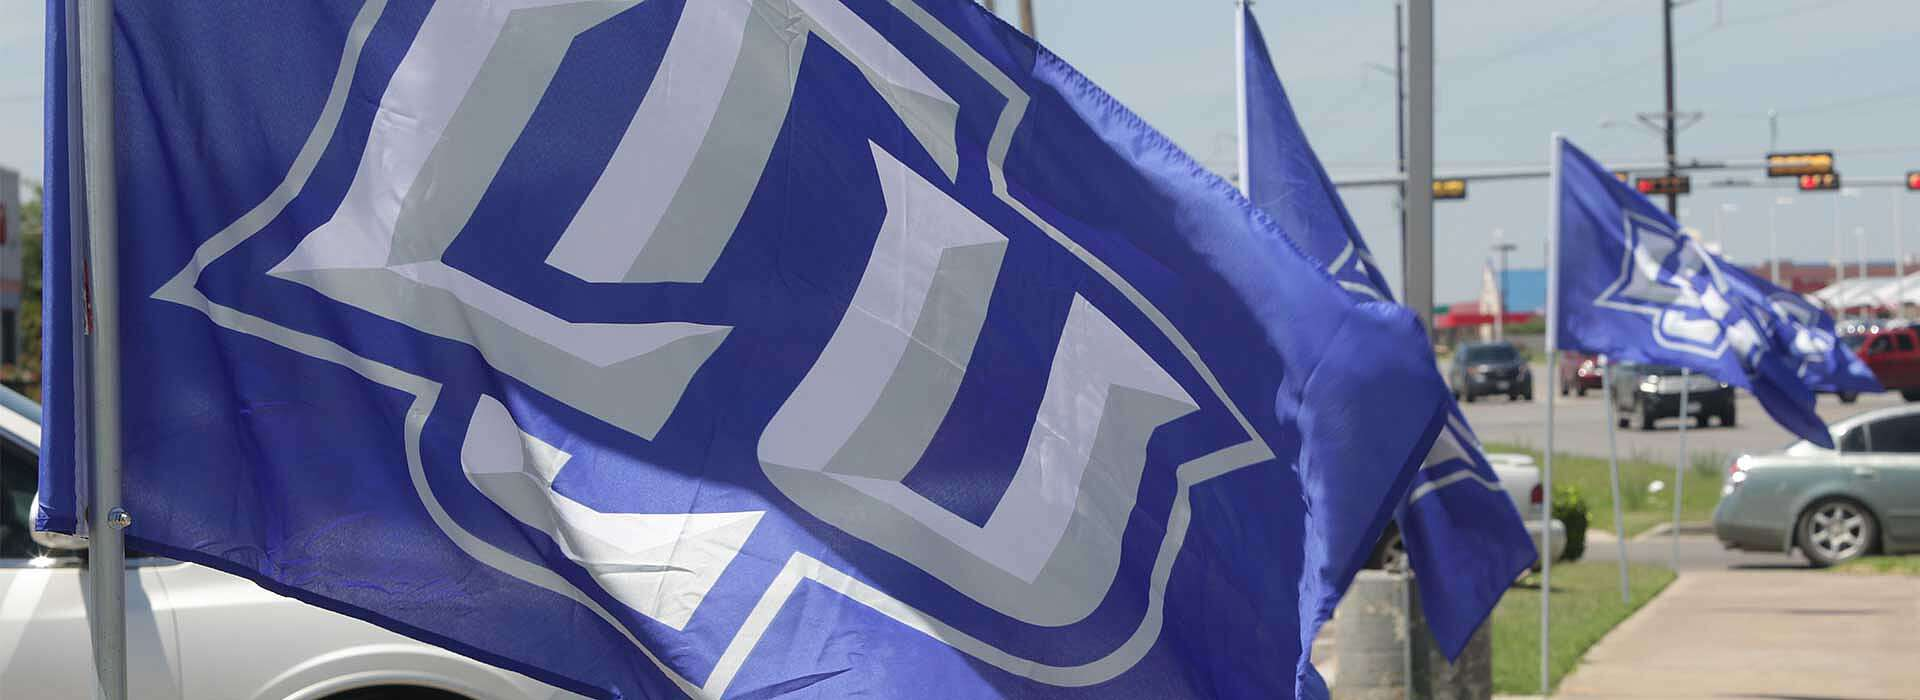 Blue flags with LCU logo in the wind